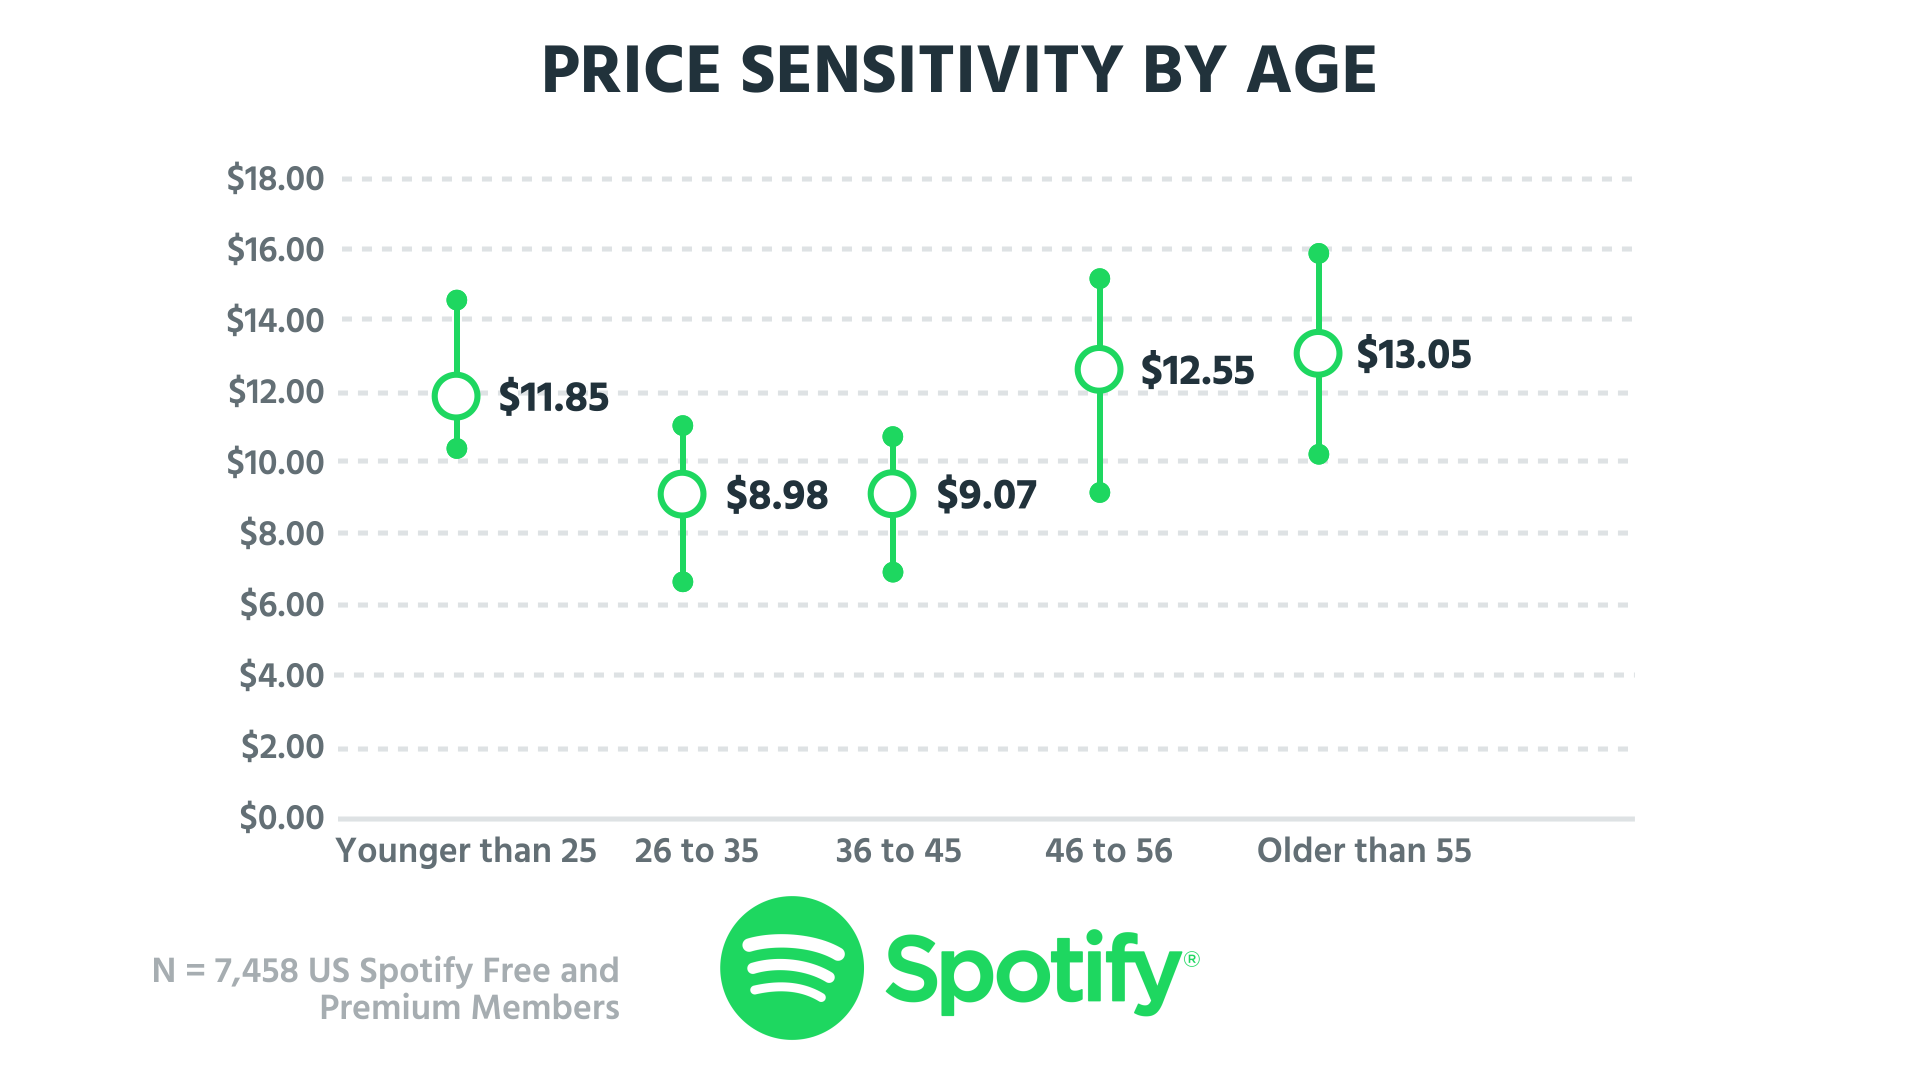 spotifyagepricesensitivity.png